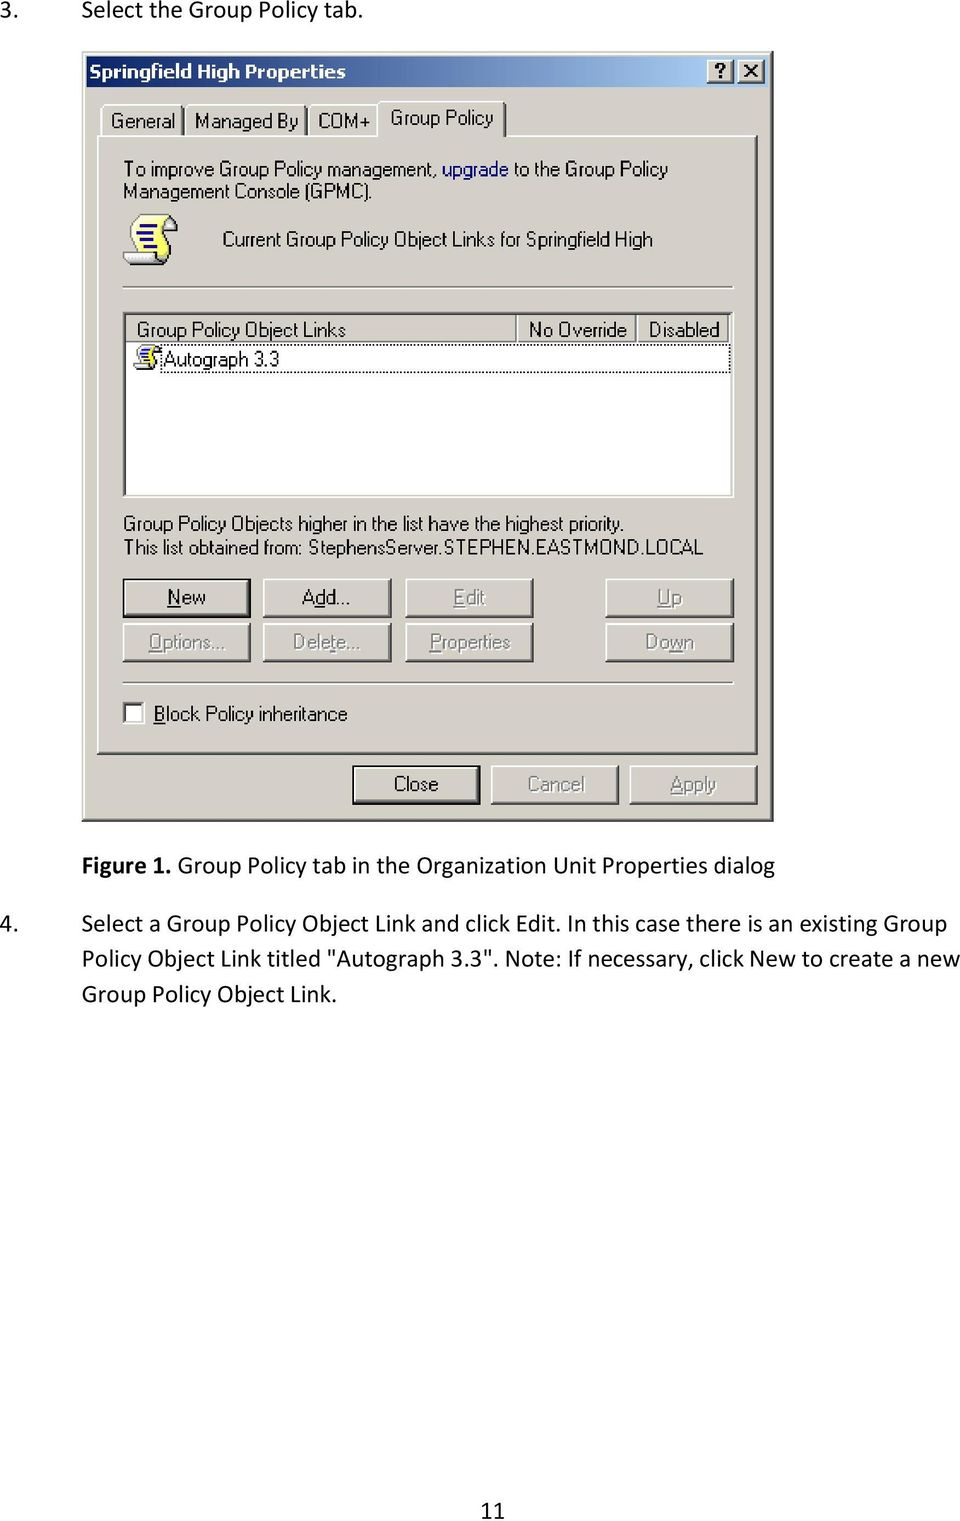 Select a Group Policy Object Link and click Edit.